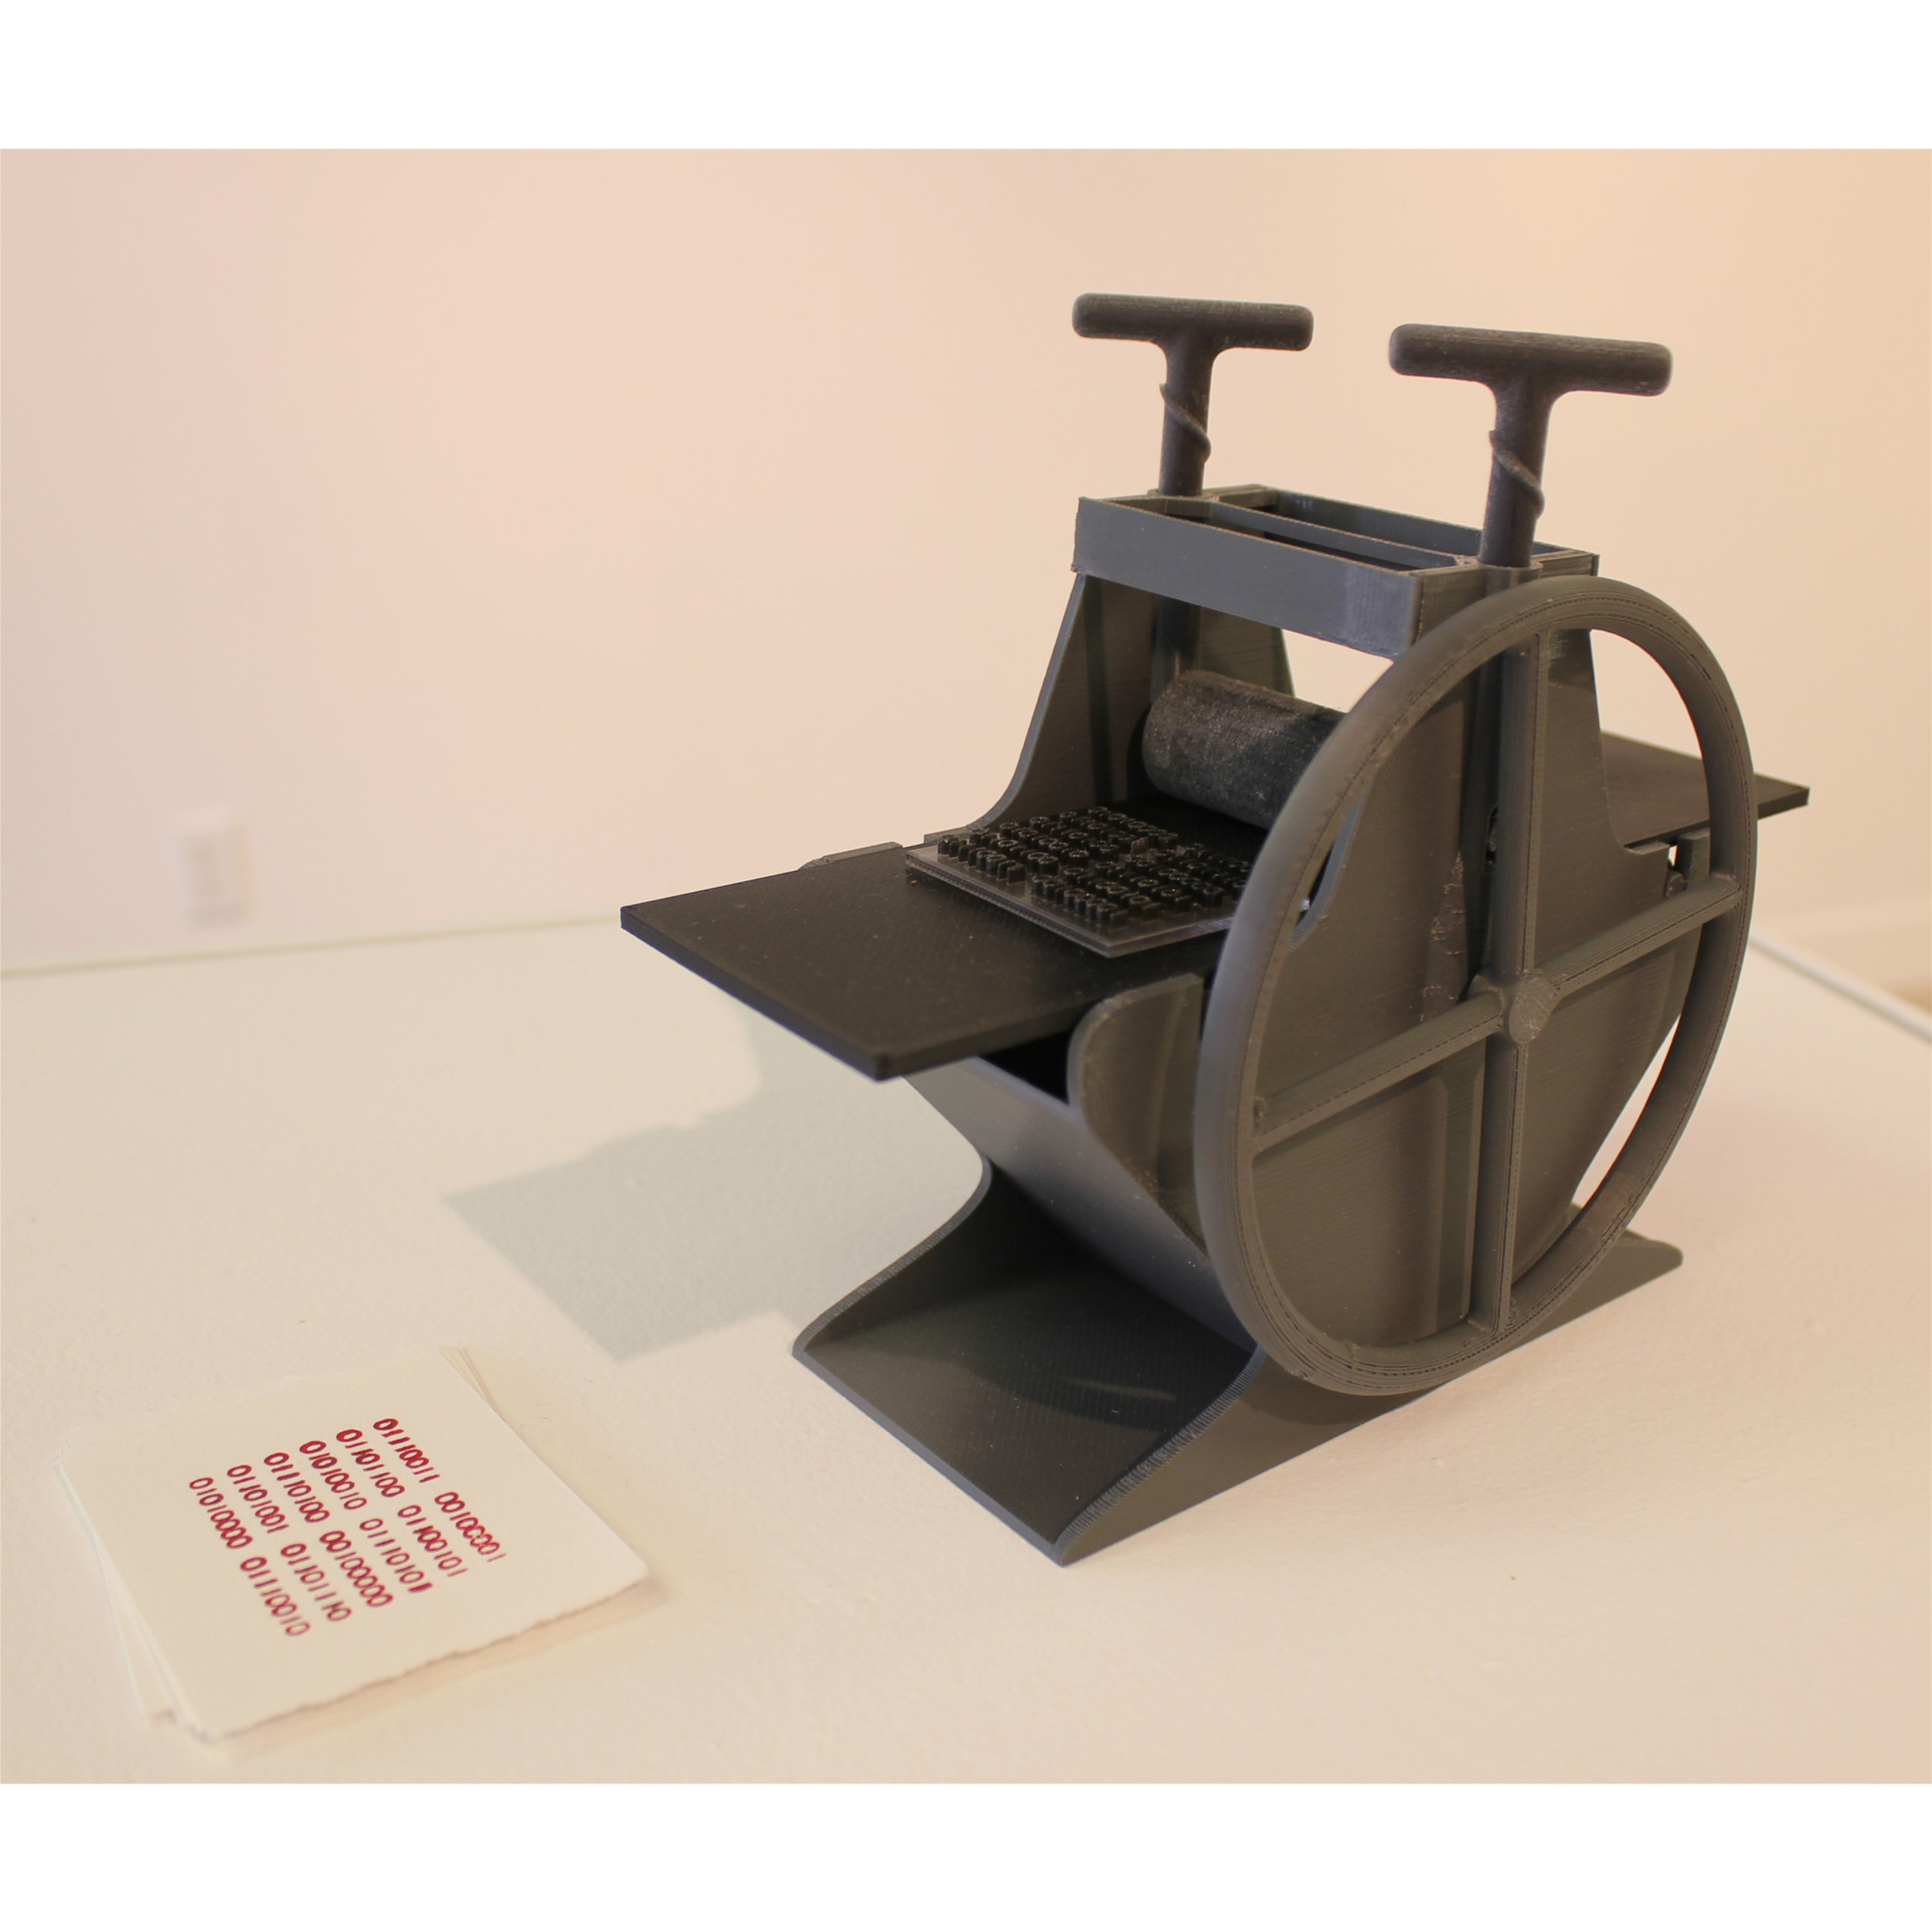 Jen Law, Re-inventing the Wheel, 2014, 3D printed printing press